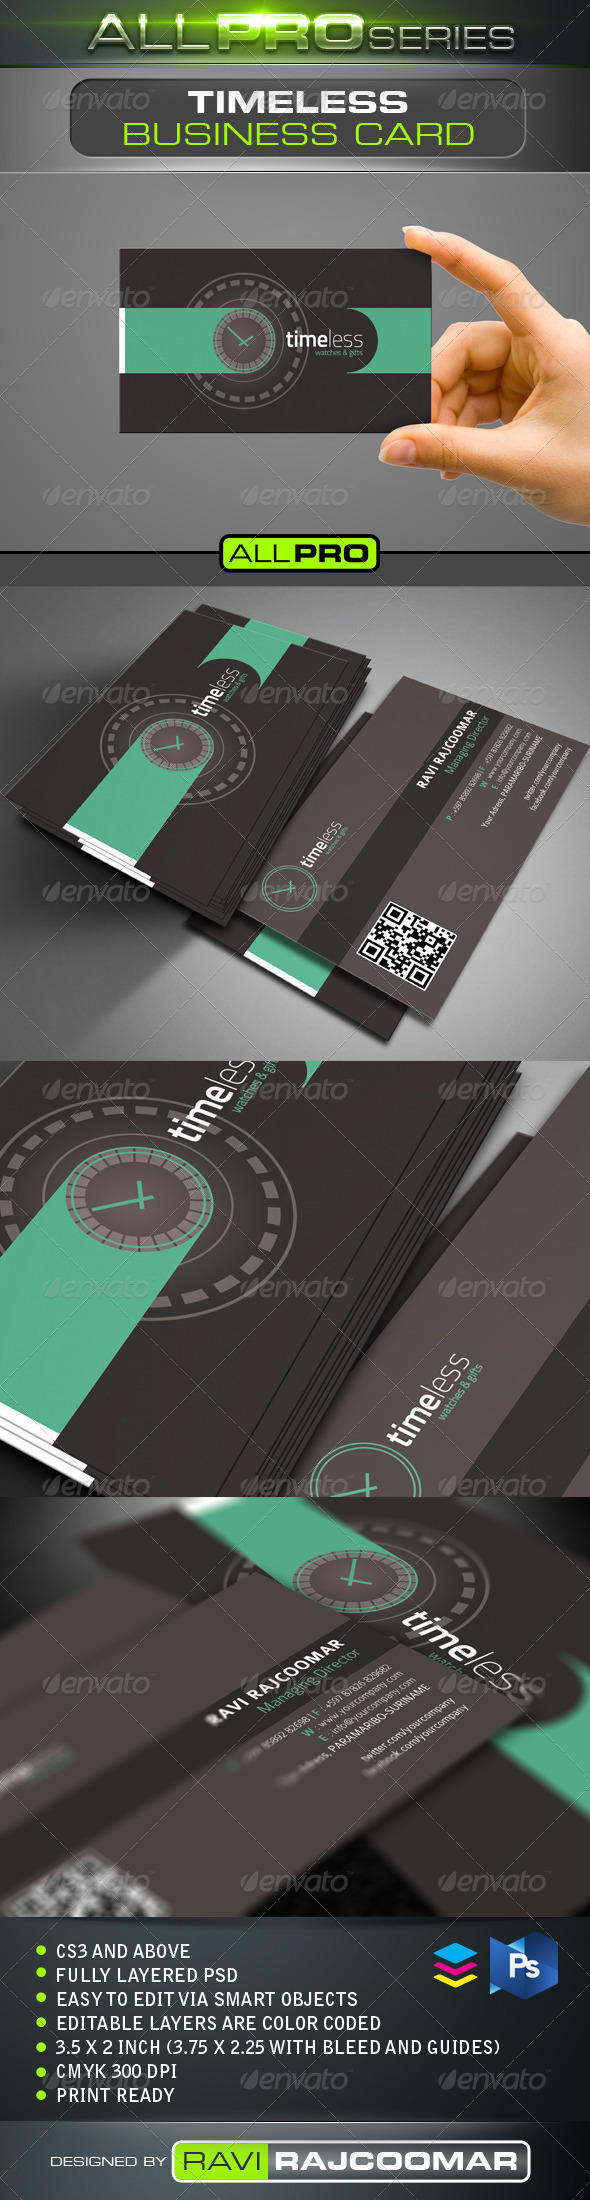 Timeless Business Card Template - Creative Business Cards